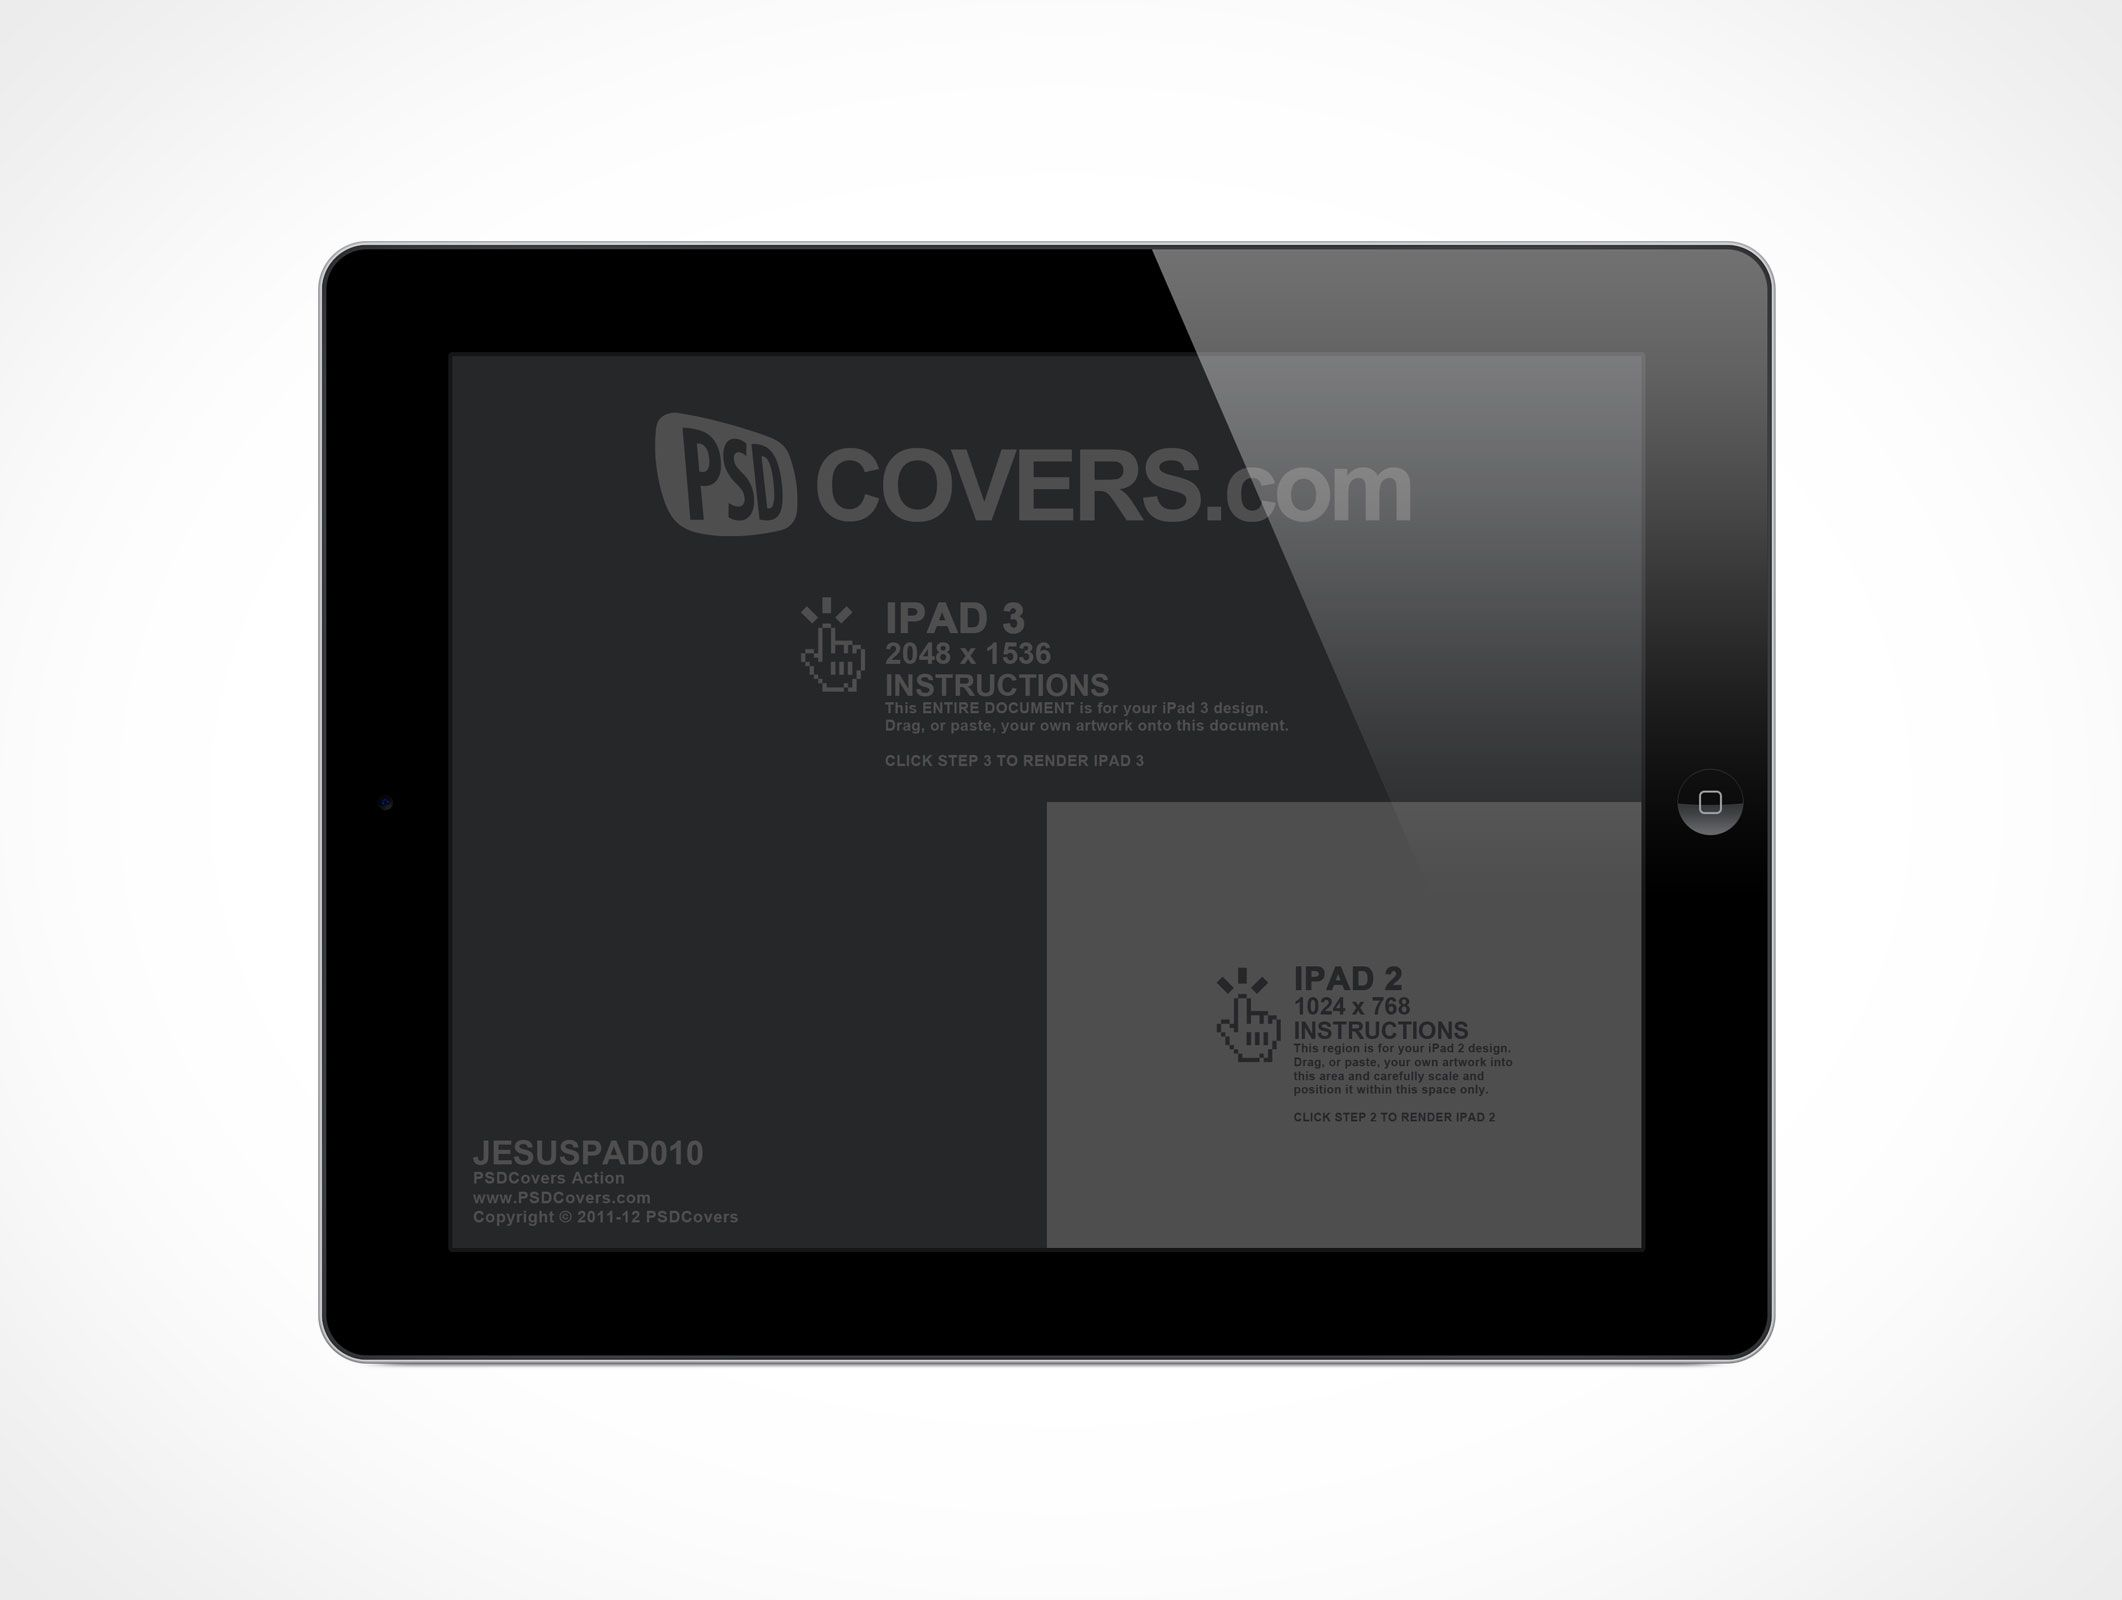 JESUSPAD010 is a front view shot of the new iPad in ...